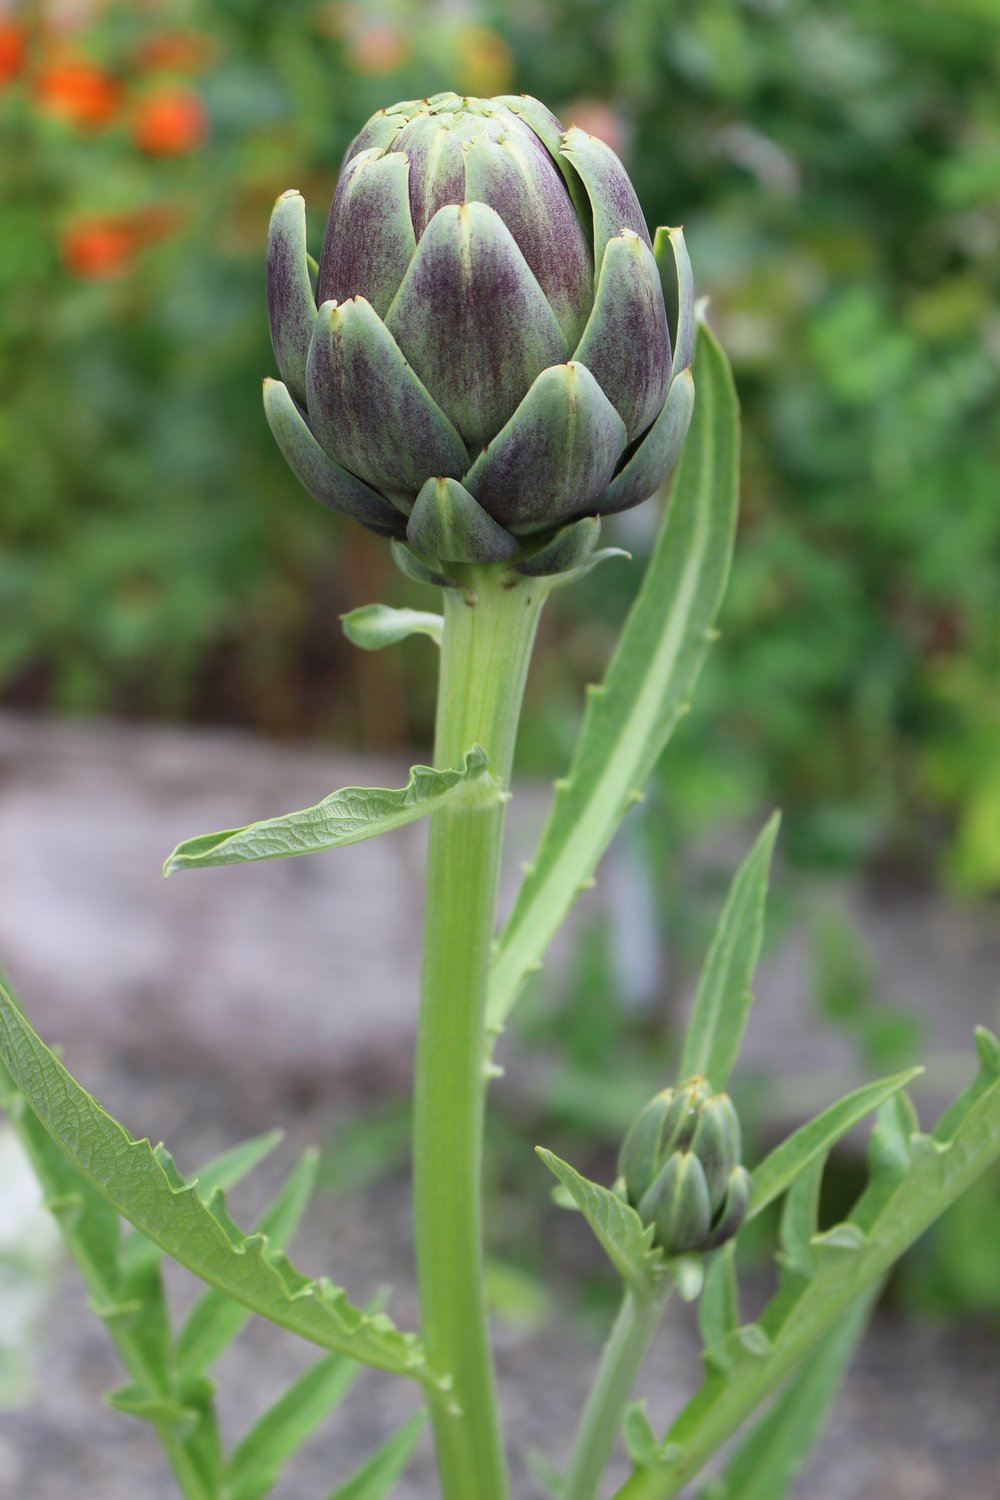 An artichoke in the Community Gardens ready for picking